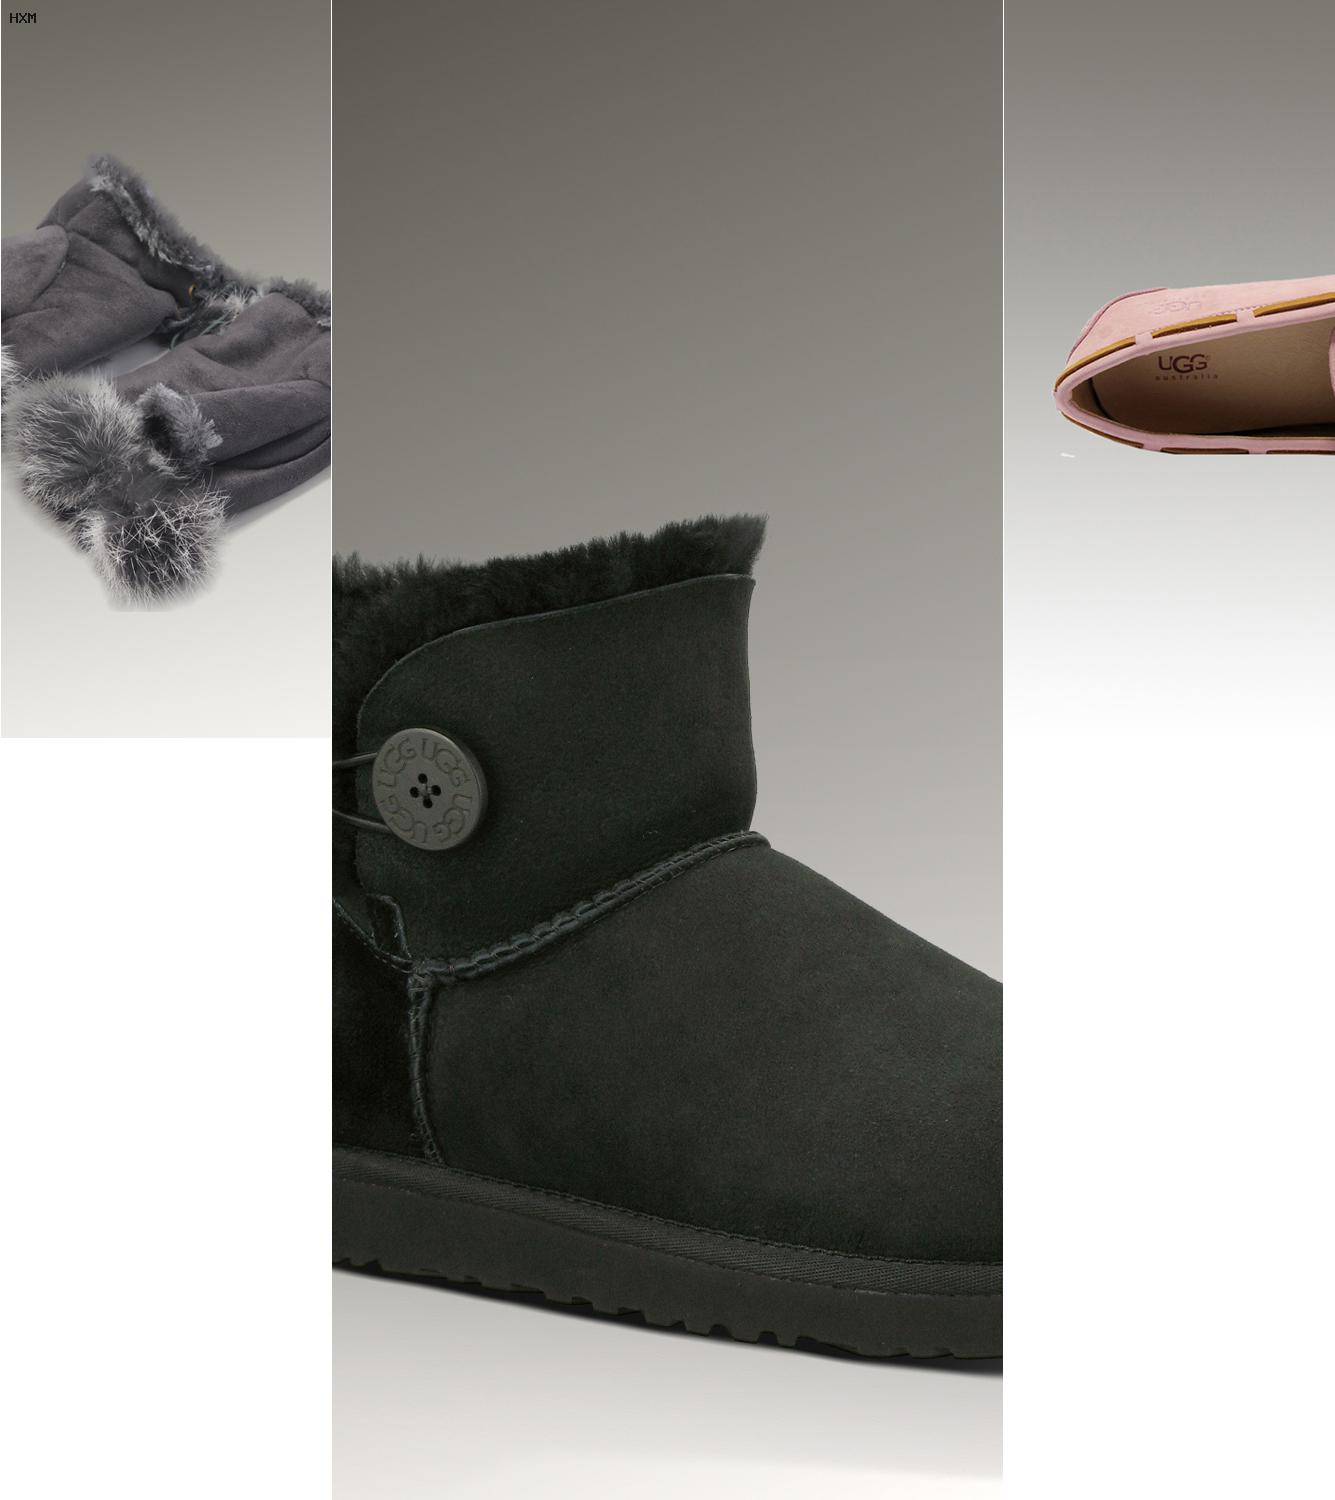 ugg boots store near me